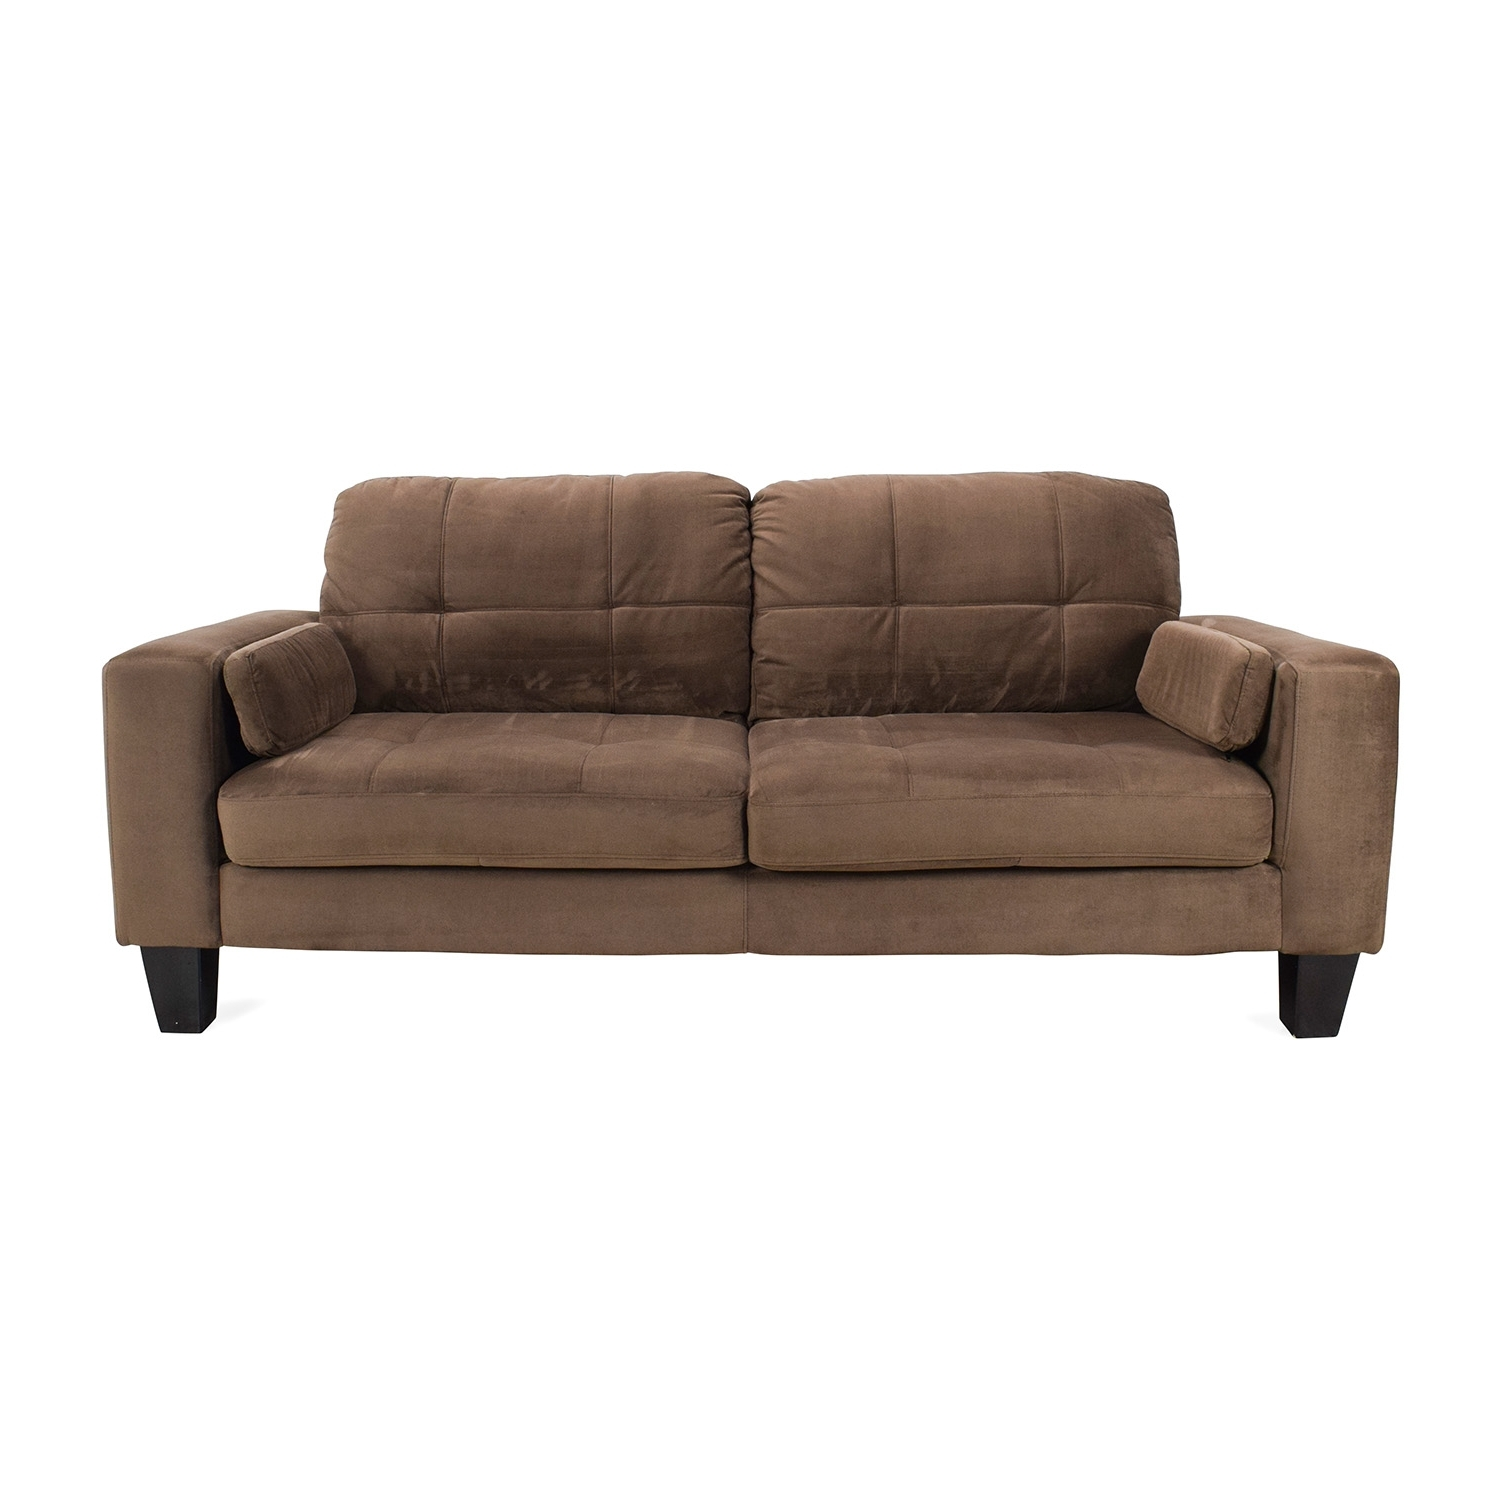 Fantastic Jennifer Sofas 94 For Sofas And Couches Set With With 2018 Jennifer Sofas (View 7 of 20)